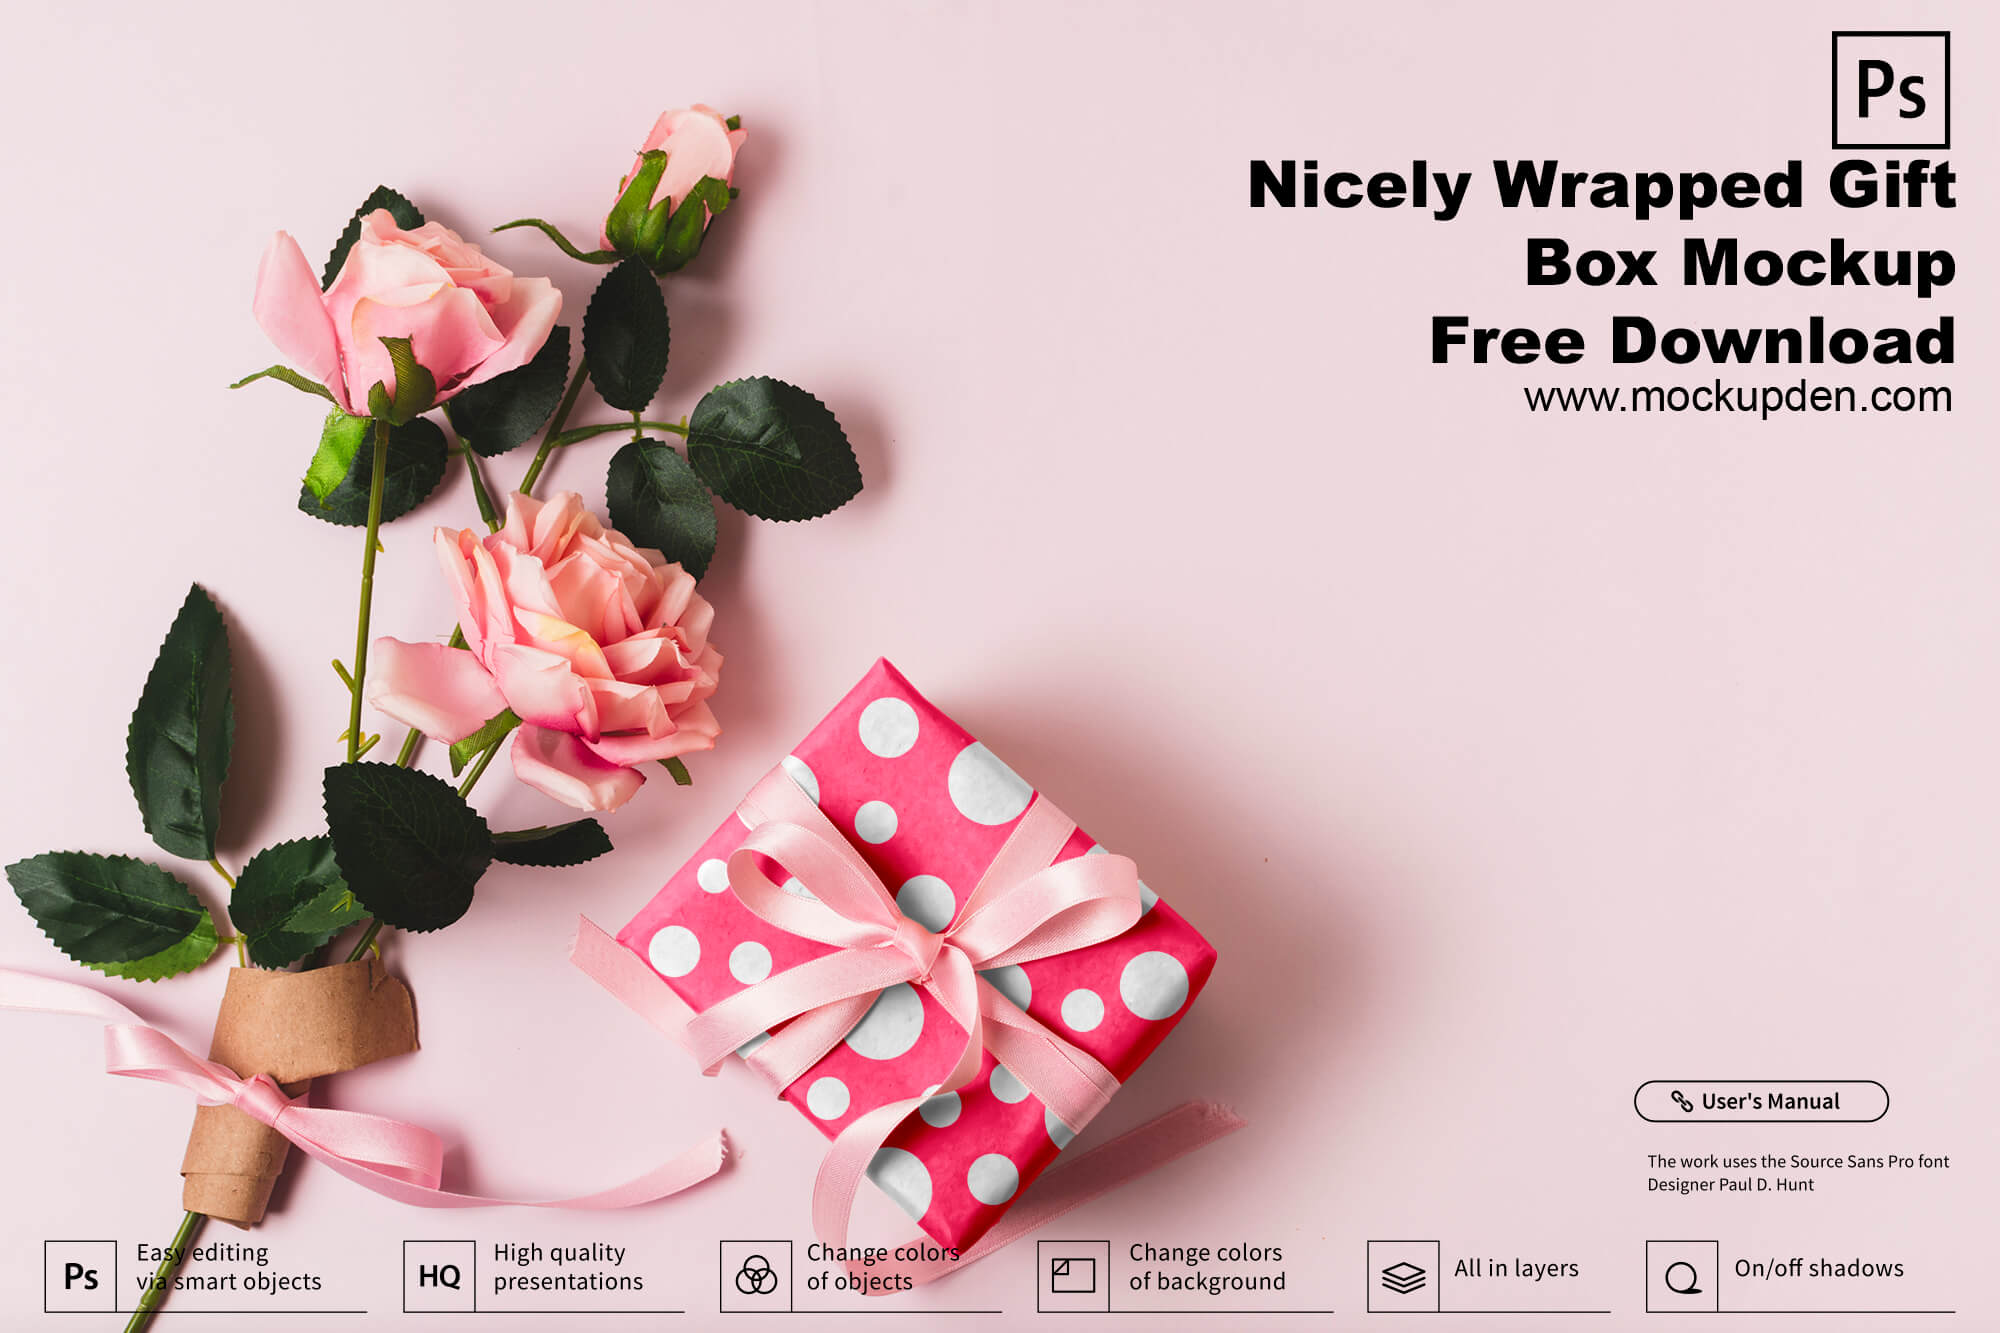 Nicely Wrapped Gift Box Mockup Free Download